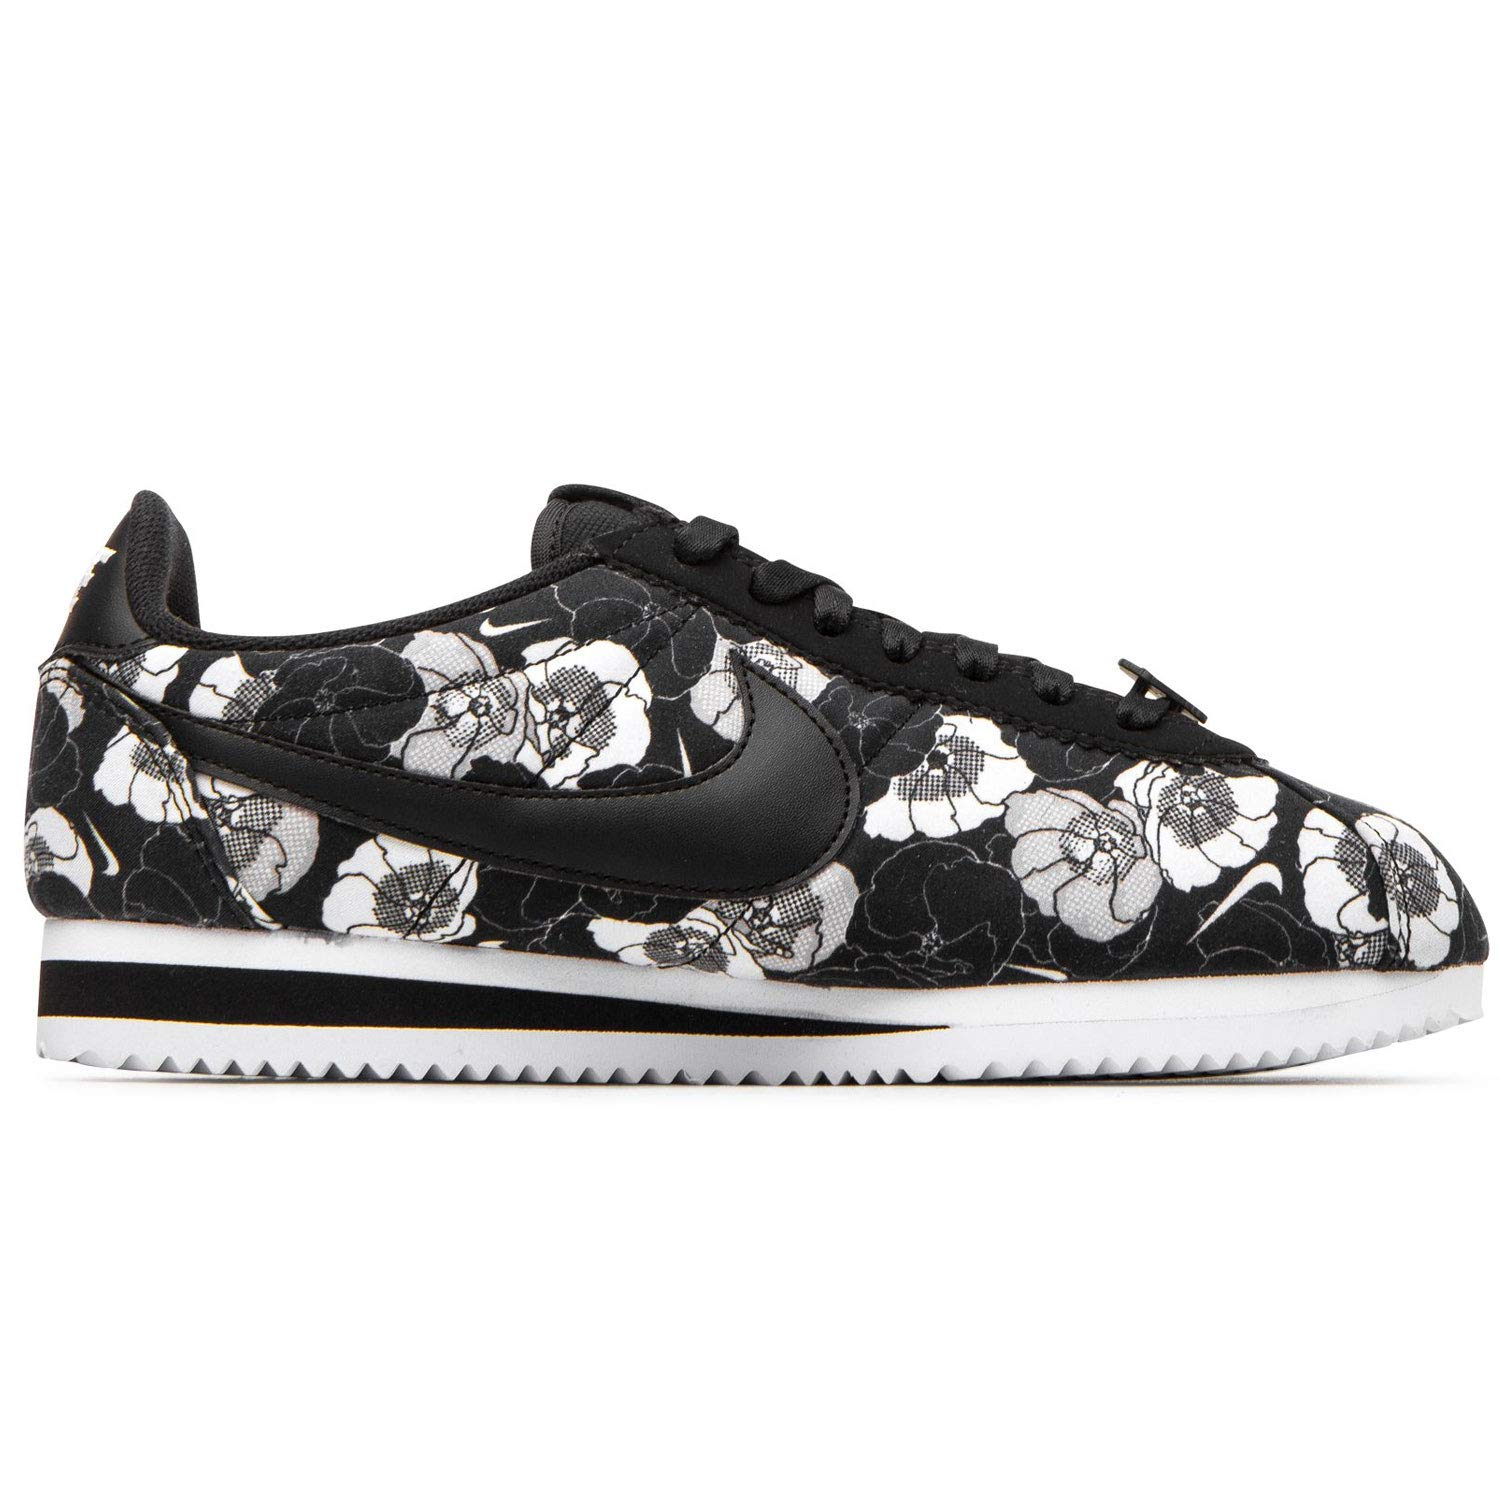 premium selection 24c01 7c3bf Amazon.com | Nike Women's Classic Cortez LX Floral Black ...